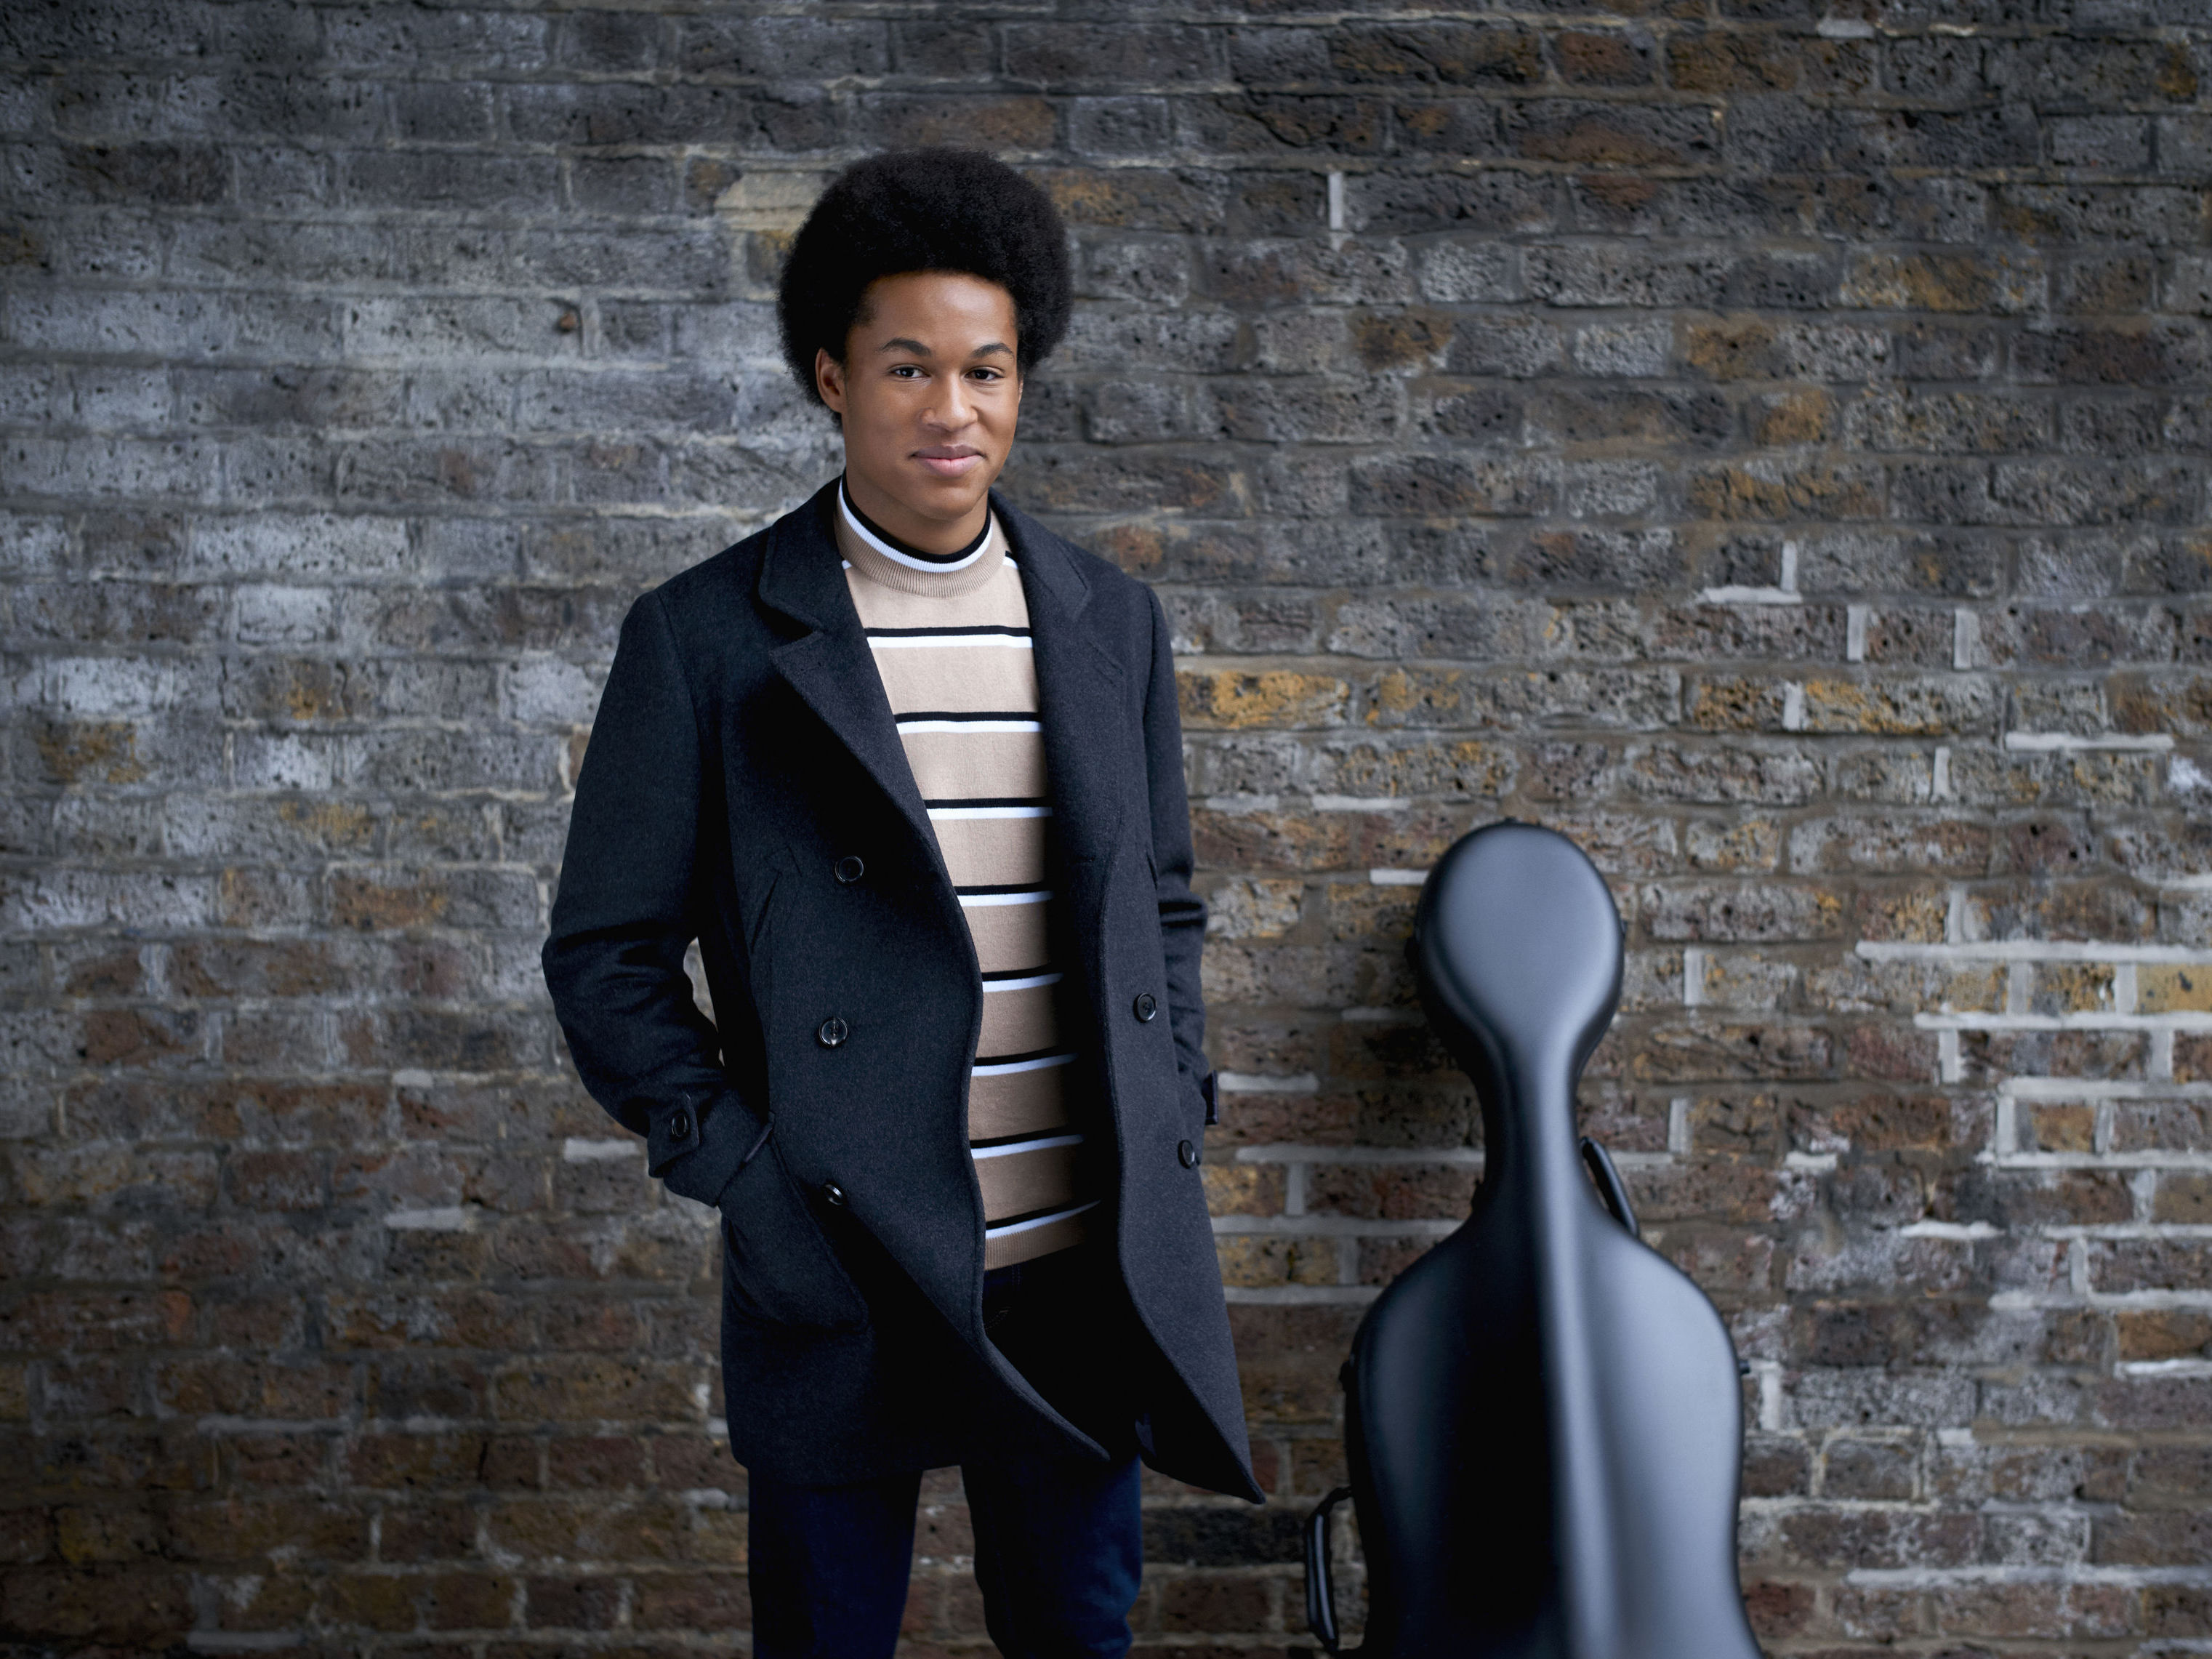 No Nerves From 19-Year-Old Royal Wedding Cellist